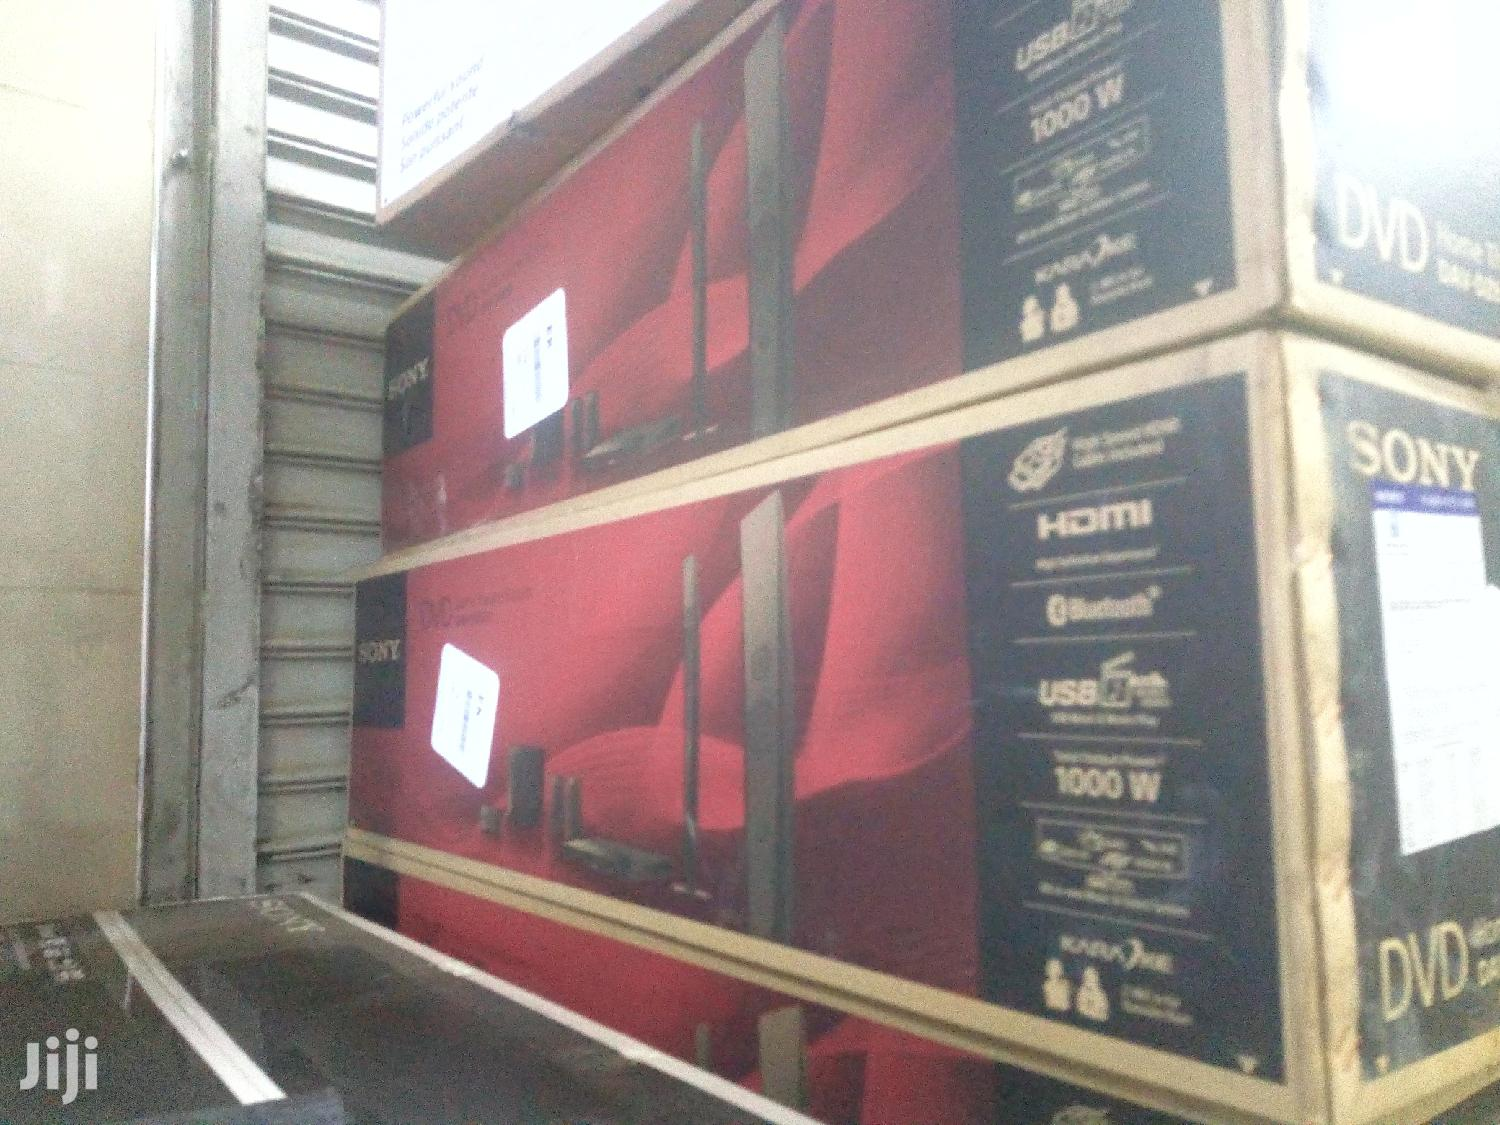 Archive: Sony Dz650 Home Theatre, 1000W 2 Tall Speakers